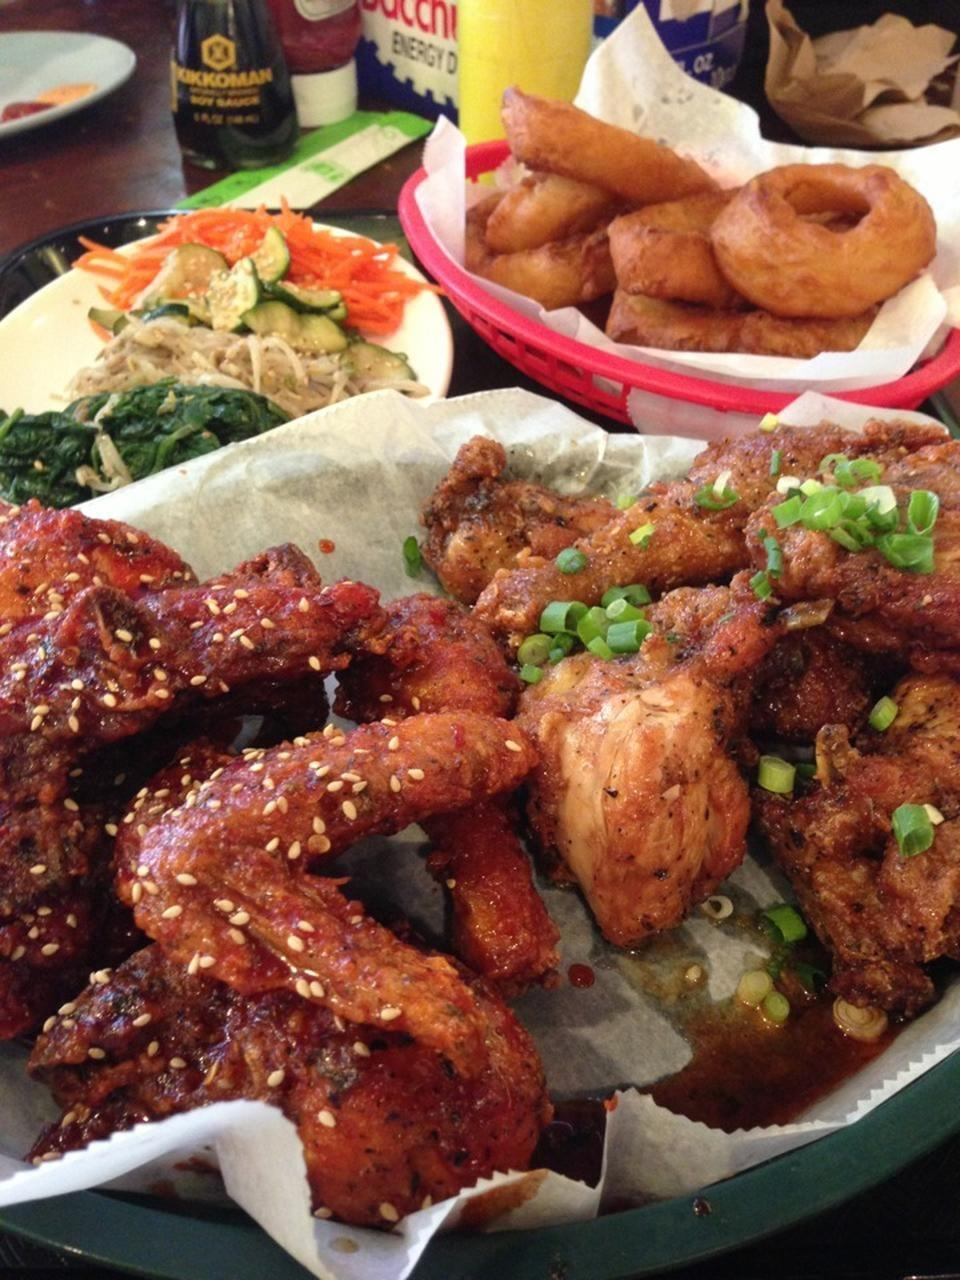 """<p><a href=""""https://www.tripadvisor.com/Restaurant_Review-g35805-d1220248-Reviews-Crisp-Chicago_Illinois.html"""" rel=""""nofollow noopener"""" target=""""_blank"""" data-ylk=""""slk:Crisp"""" class=""""link rapid-noclick-resp"""">Crisp</a>, Chicago</p><p>The Seoul Sassy fried chicken is undeniably amazing. It's twice-fried in a pressure cooker, and drizzled with a soy, <span class=""""entity tip_taste_match"""">garlic</span>, and <span class=""""entity tip_taste_match"""">ginger</span> <span class=""""entity tip_taste_match"""">marinade</span> and tossed with crunchy <span class=""""entity tip_taste_match"""">scallions</span>.<span class=""""redactor-invisible-space""""> - Foursquare user <a href=""""https://foursquare.com/redeyechicago"""" rel=""""nofollow noopener"""" target=""""_blank"""" data-ylk=""""slk:Redeye Chicago"""" class=""""link rapid-noclick-resp"""">Redeye Chicago</a></span><br></p>"""